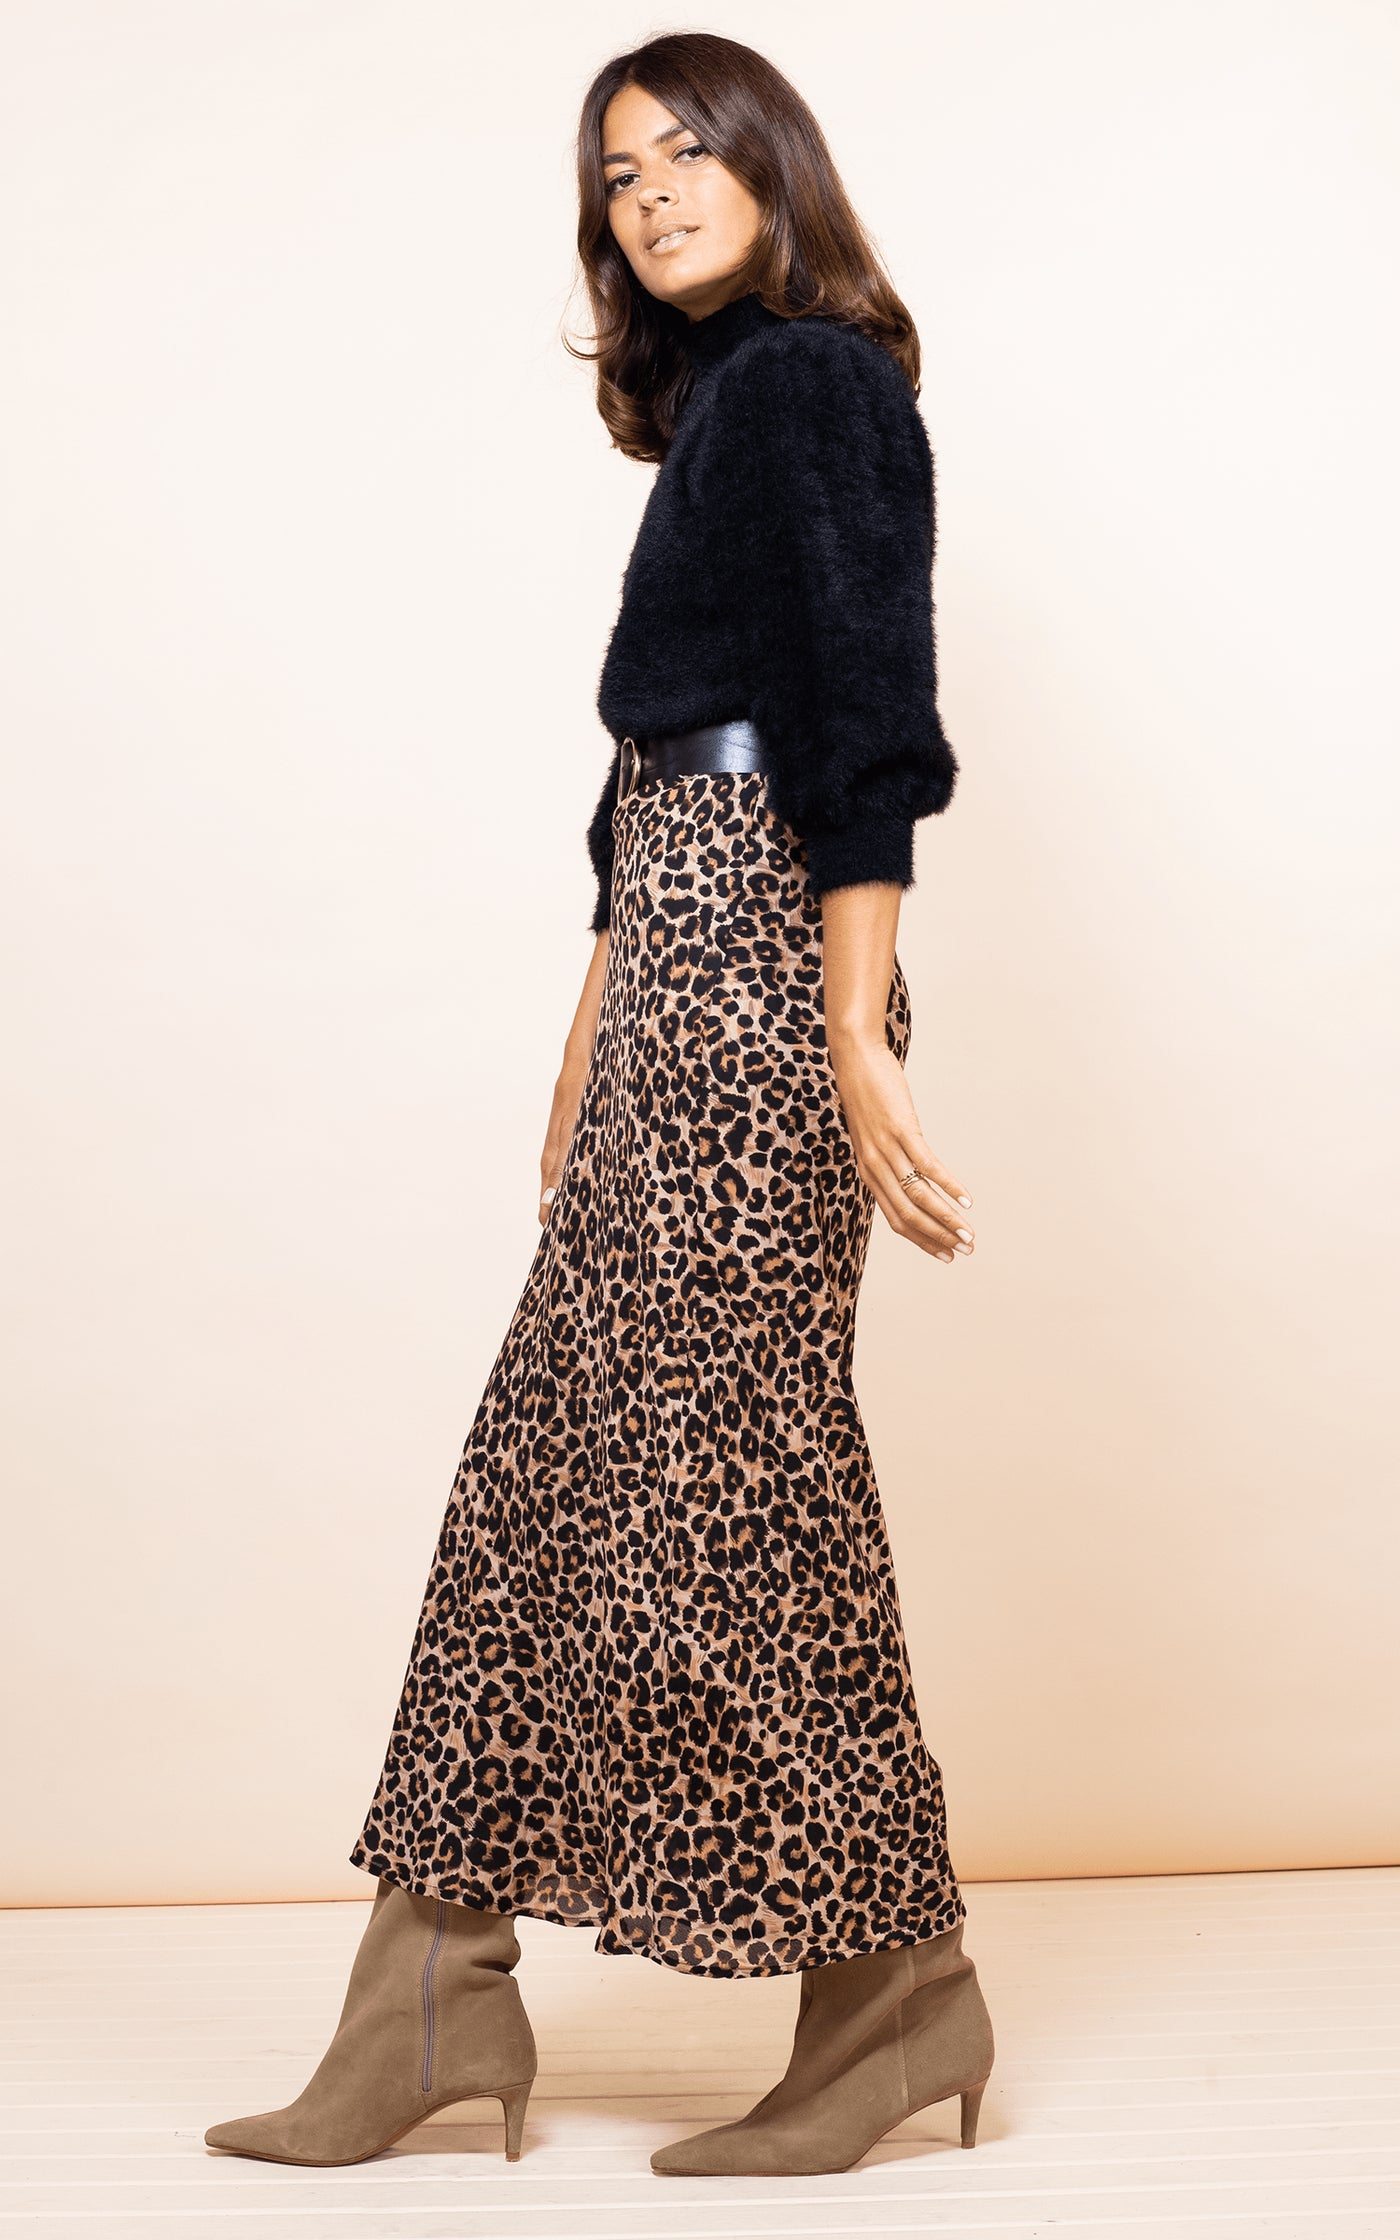 Dancing Leopard model walks forwards wearing Sophie Skirt in leopard print with black fluffy jumper and boots